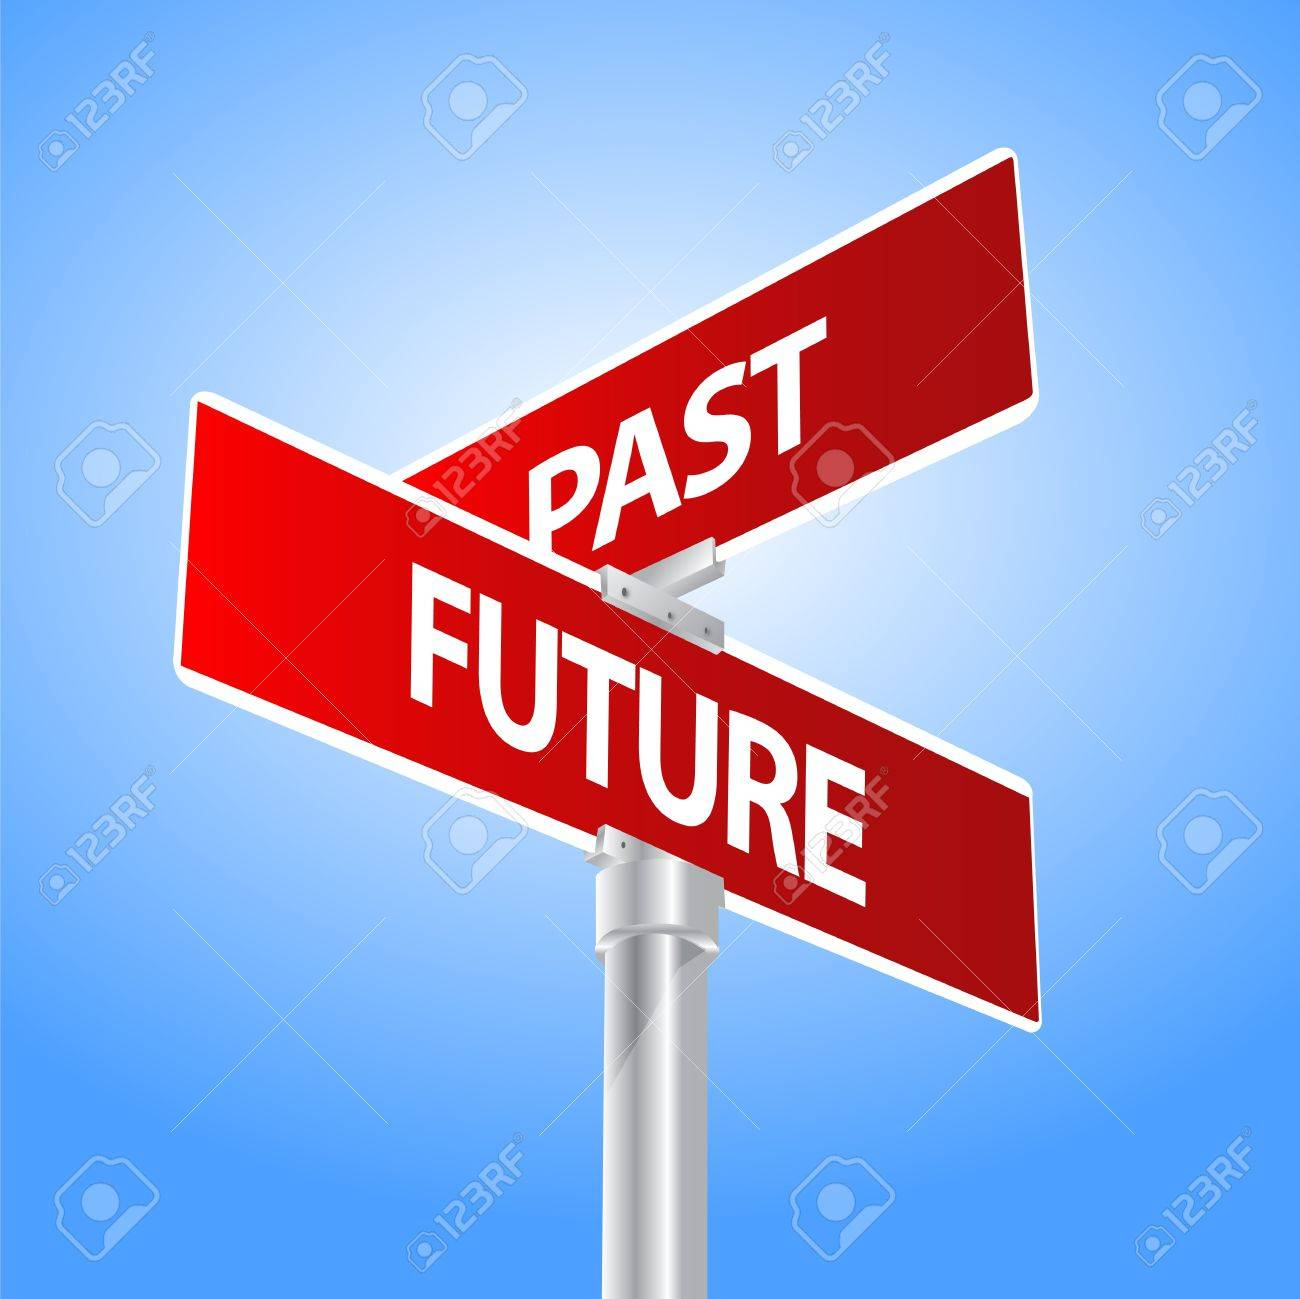 Future Past Sign Stock Vector - 13447730